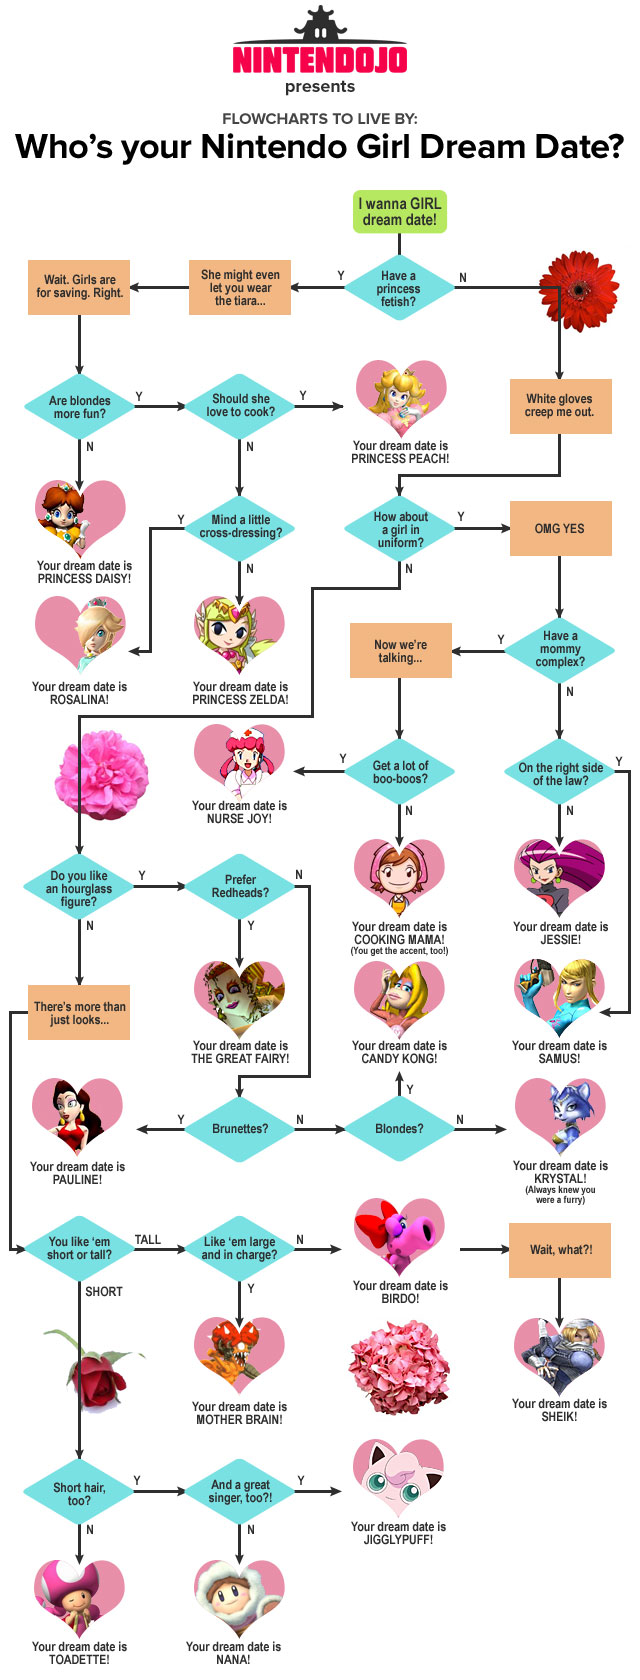 Nintendojo Flowchart: Your Nintendo Girl Dream Date